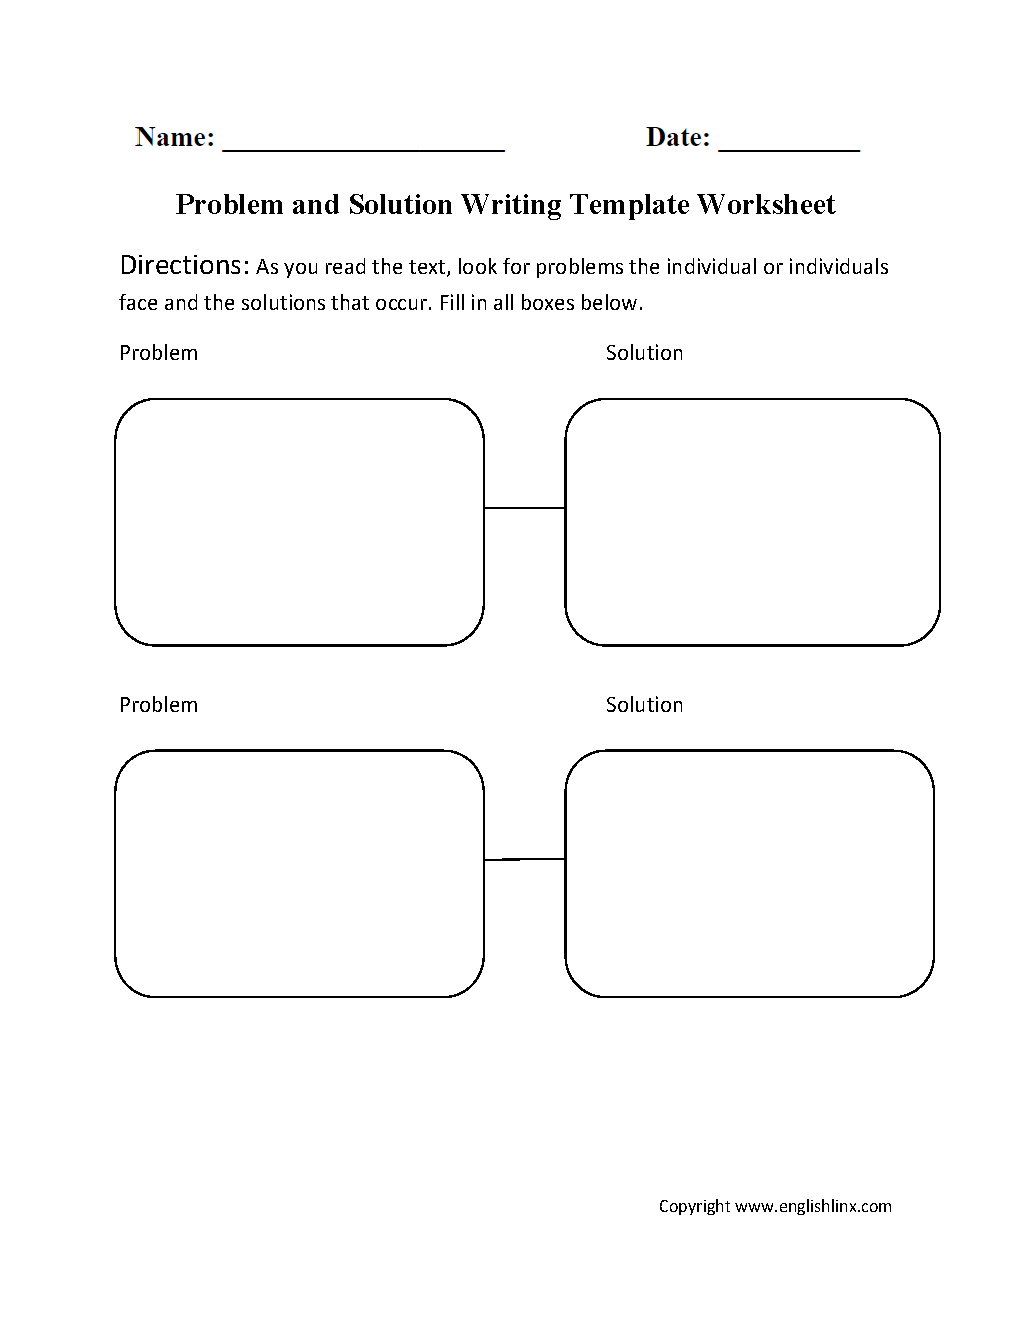 Writing Template Worksheets – Problem and Solution Worksheets